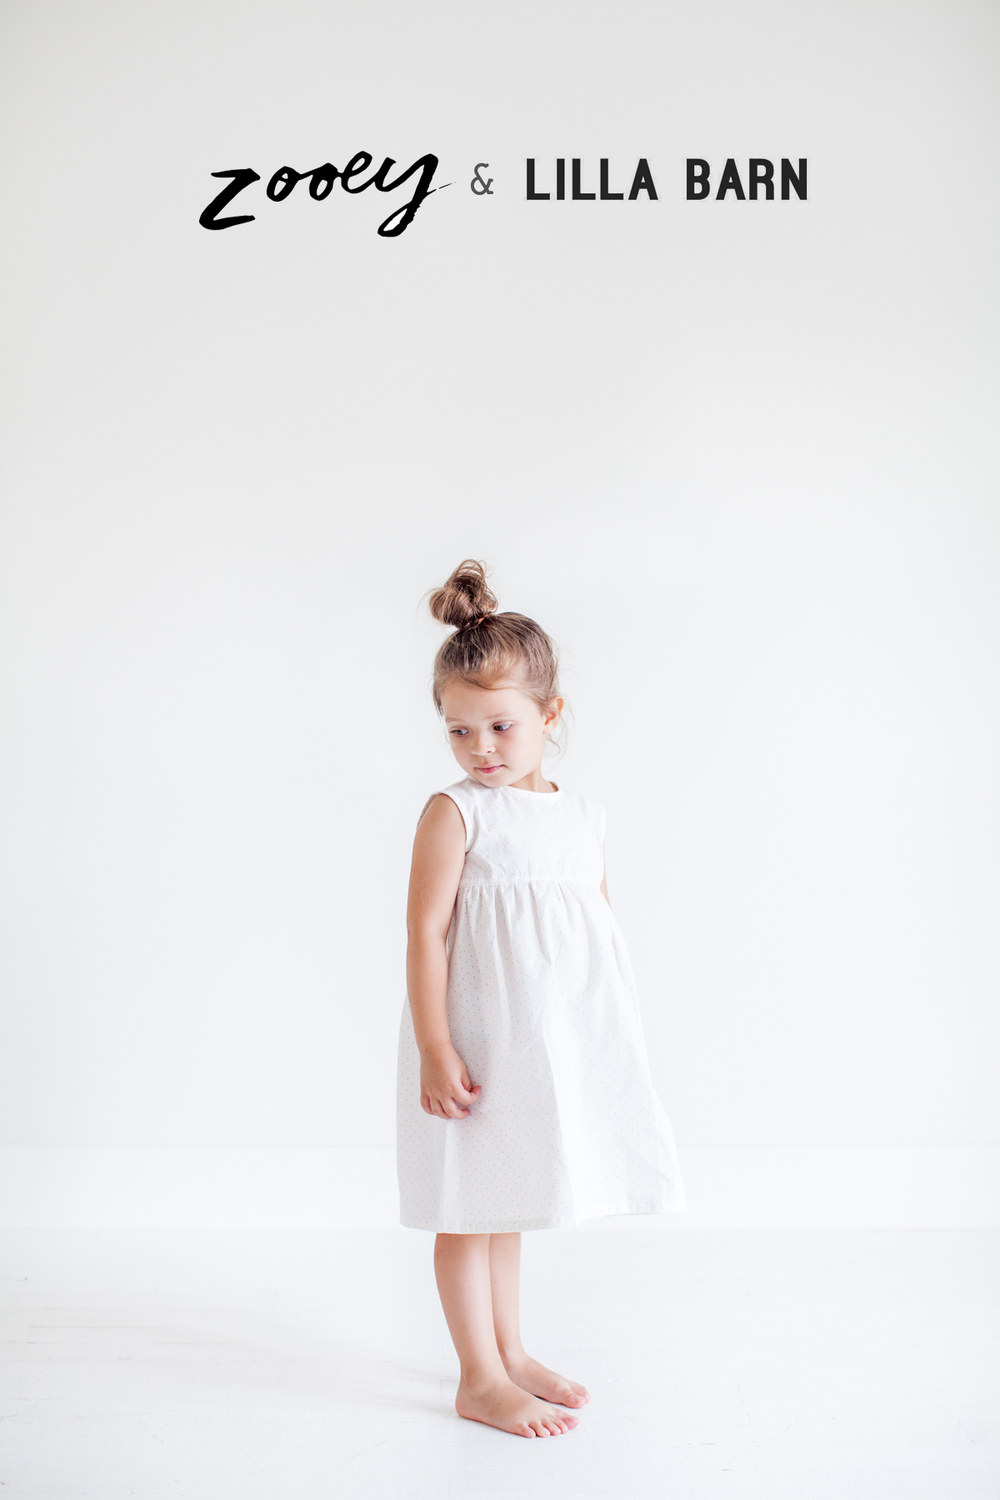 Vintage-Styled Dresses for Girls | Zooey Magazine x Lilla Barn